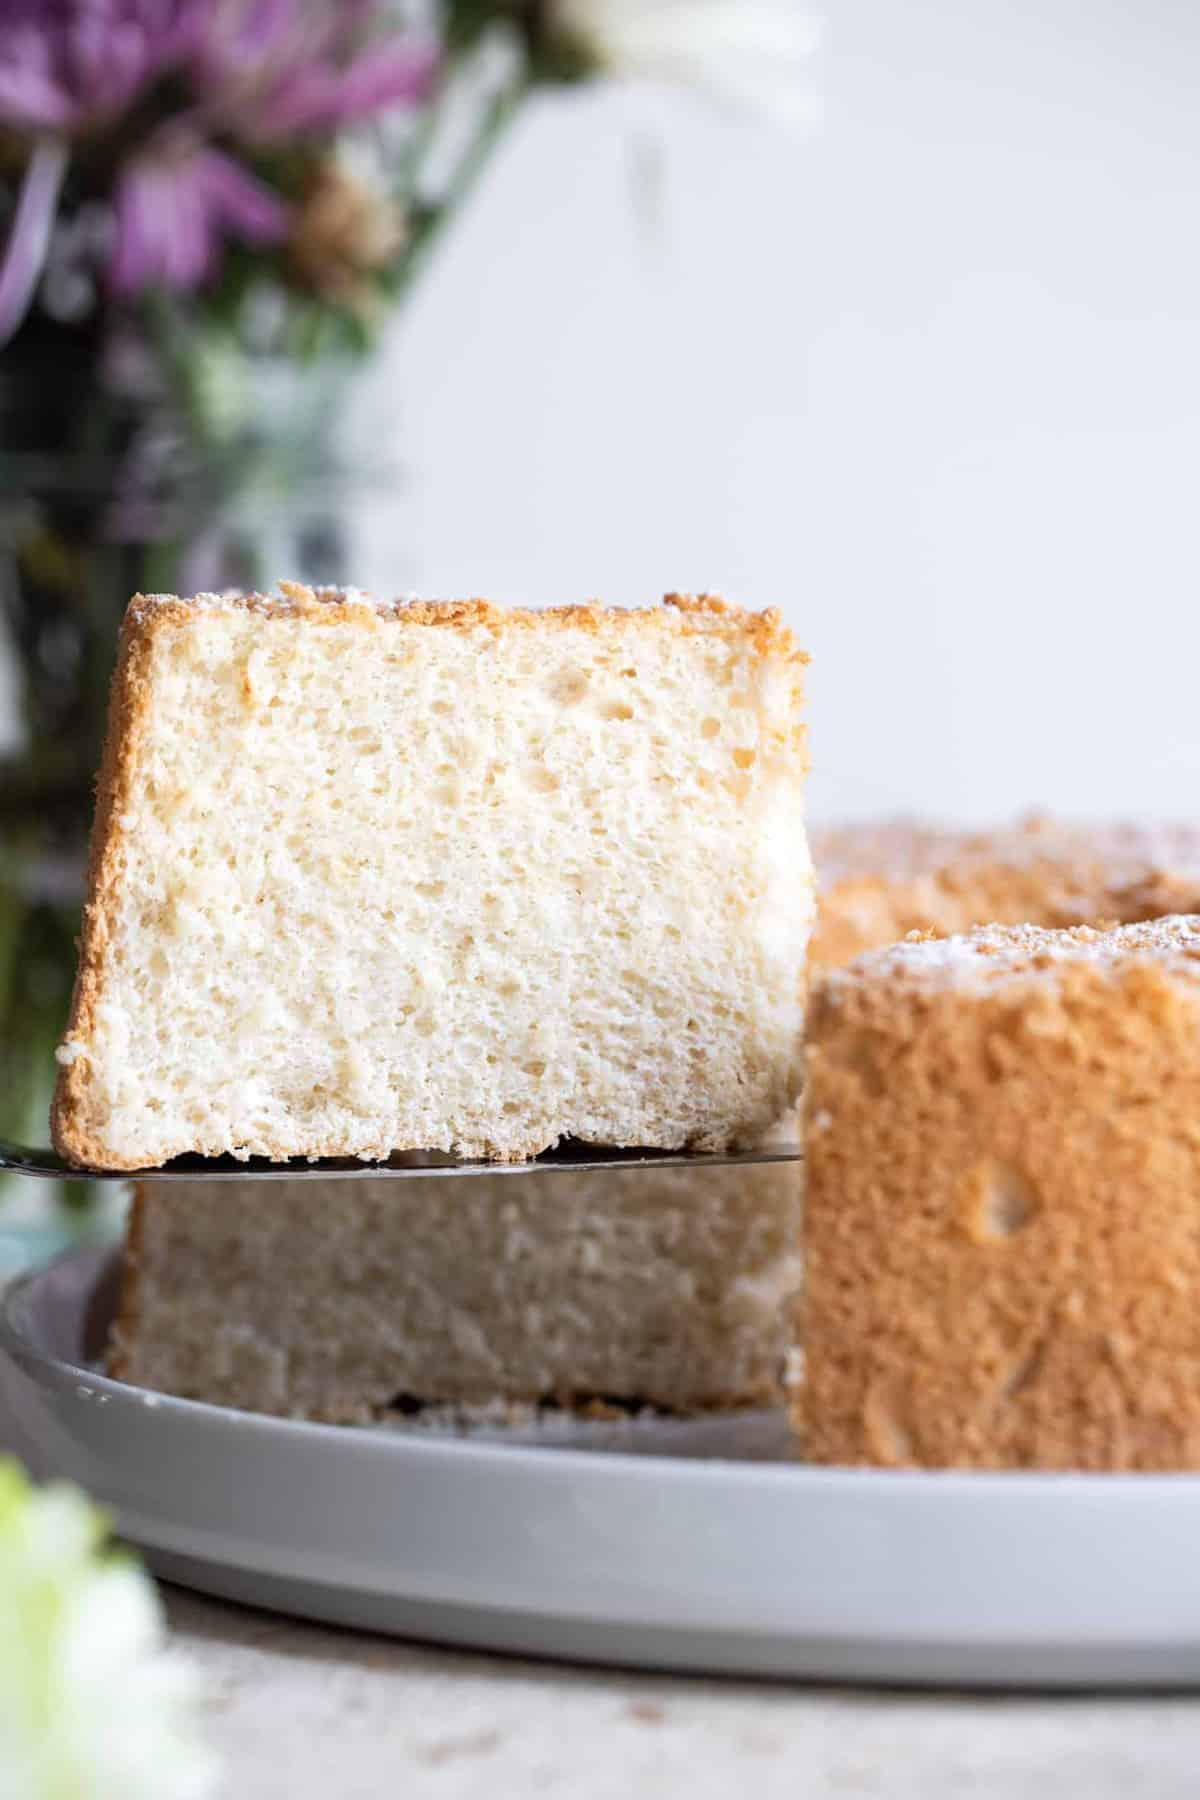 Sugar free angel food cake slice lifting out of a cake